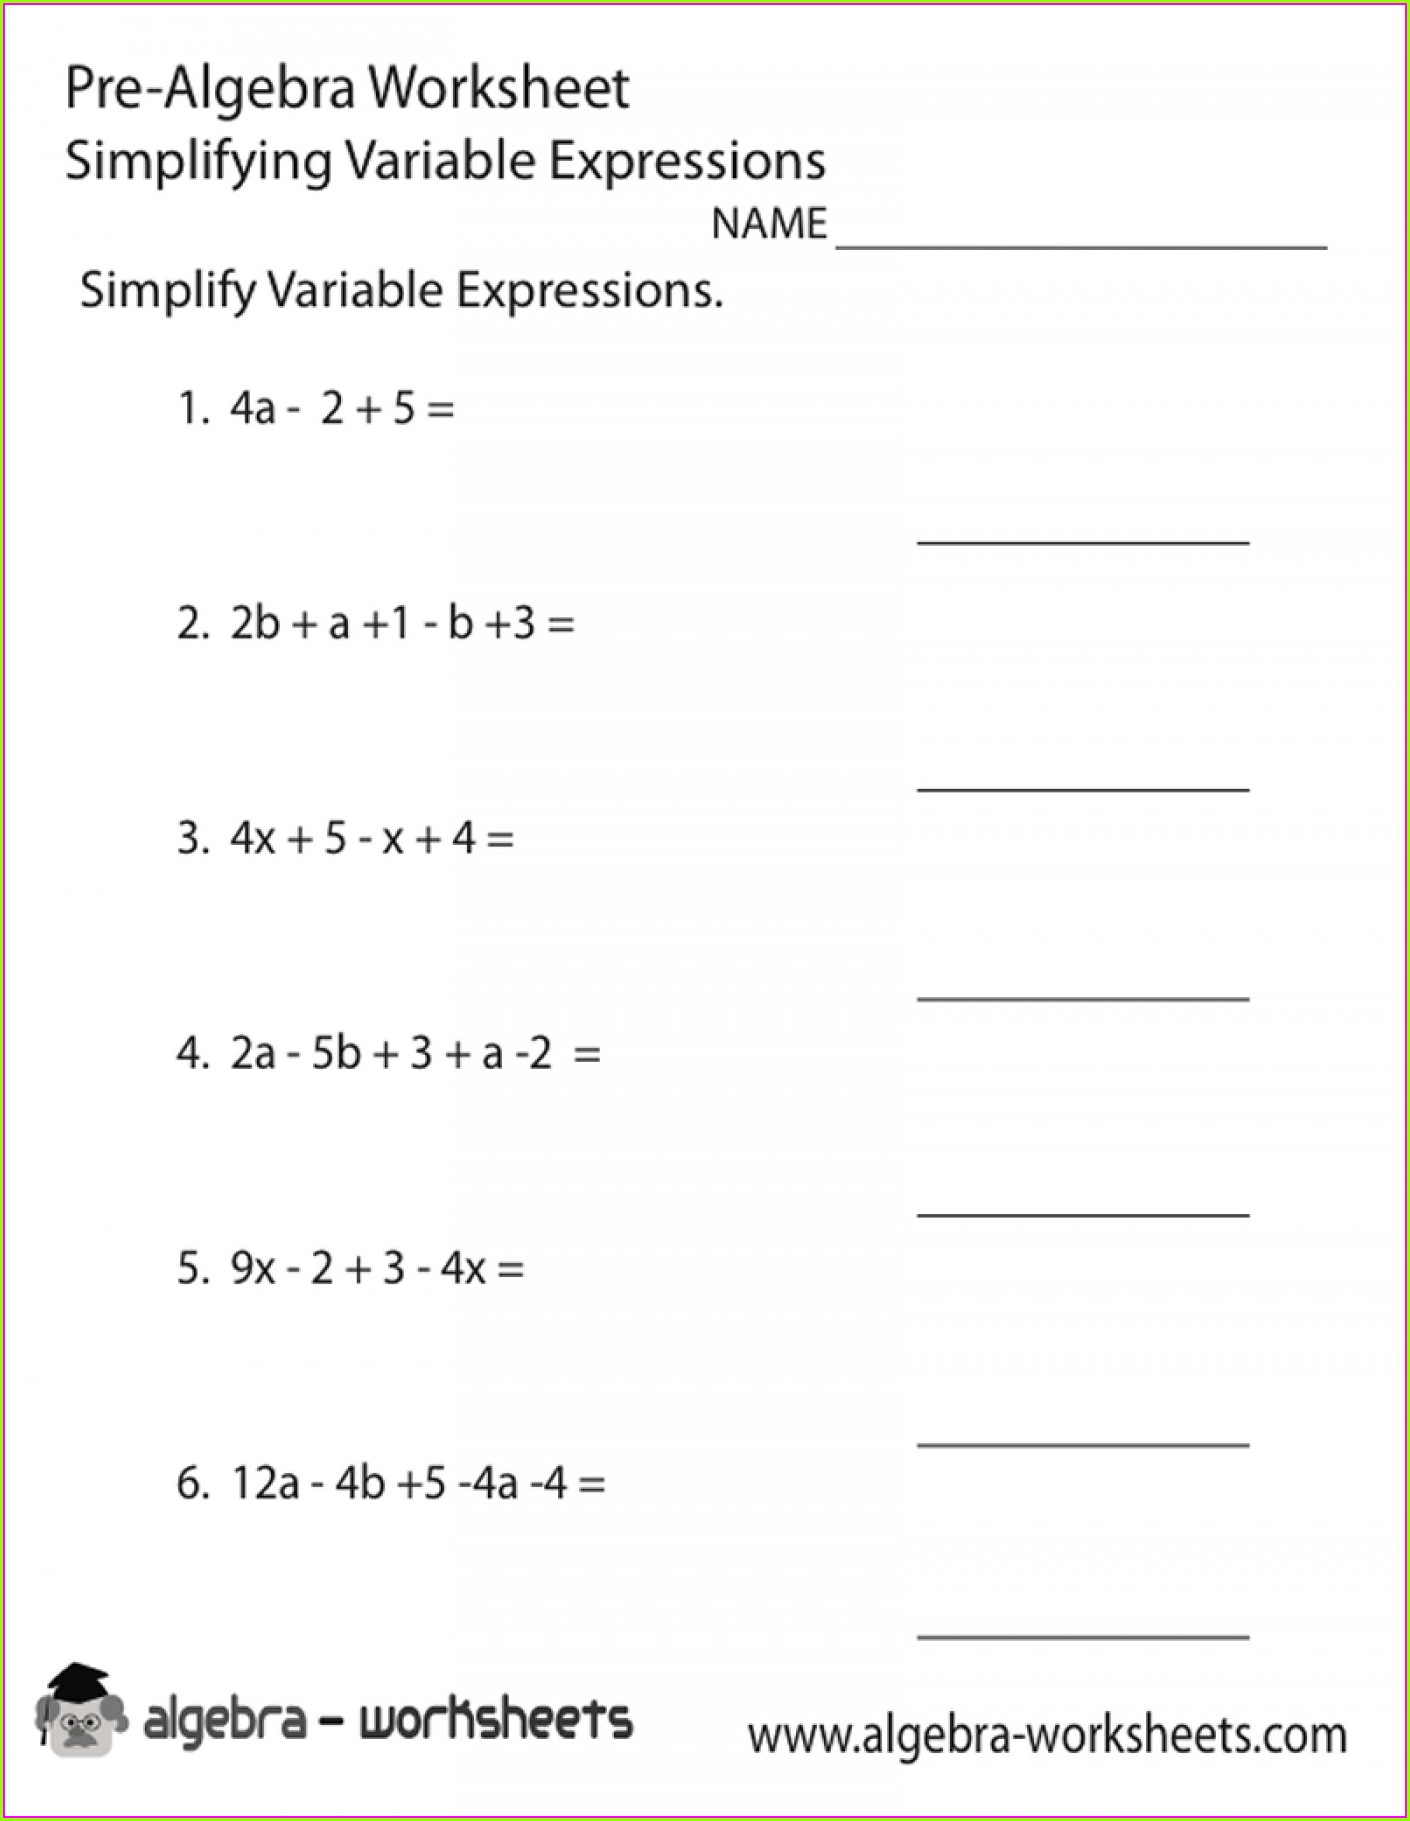 Simplifying Algebraic Fractions Worksheet With Answers